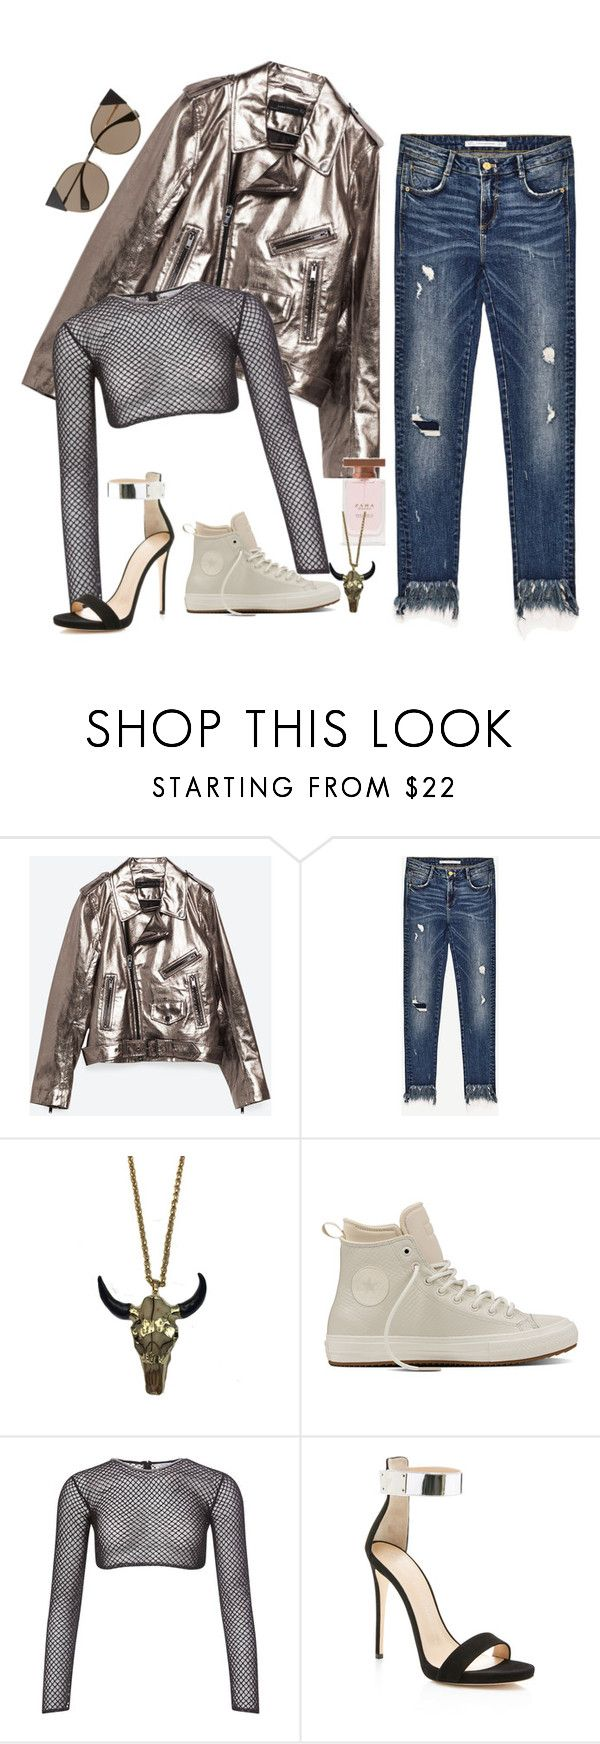 """""""Don't You See"""" by chelsofly ❤ liked on Polyvore featuring Piel Leather, Zara Taylor, Converse, PA5H, Giuseppe Zanotti and Fendi"""